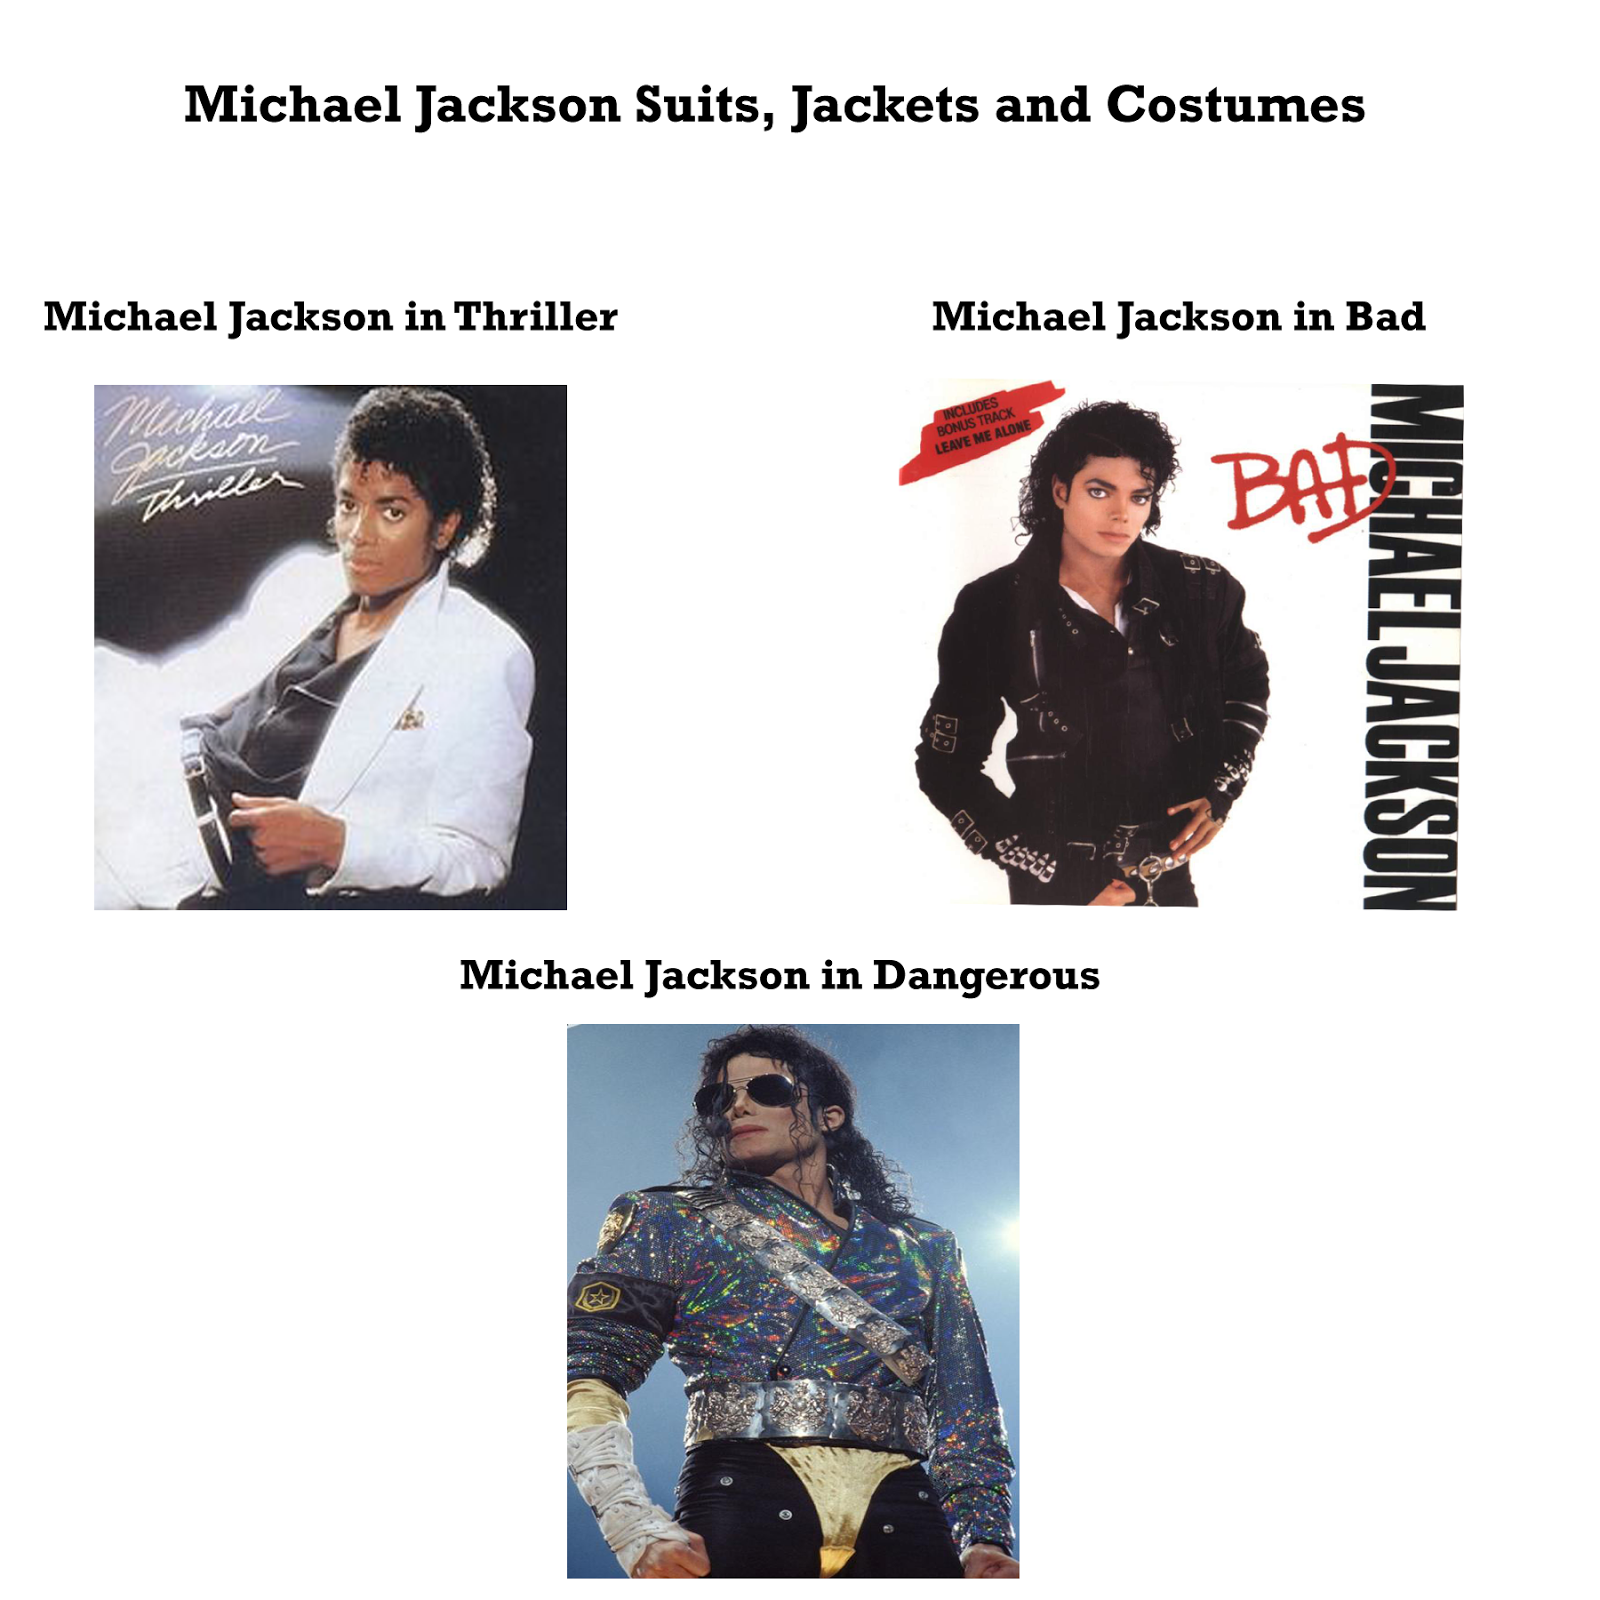 Michael Jackson (MJ) Suits, Tuxedo Jackets, Costumes and ...